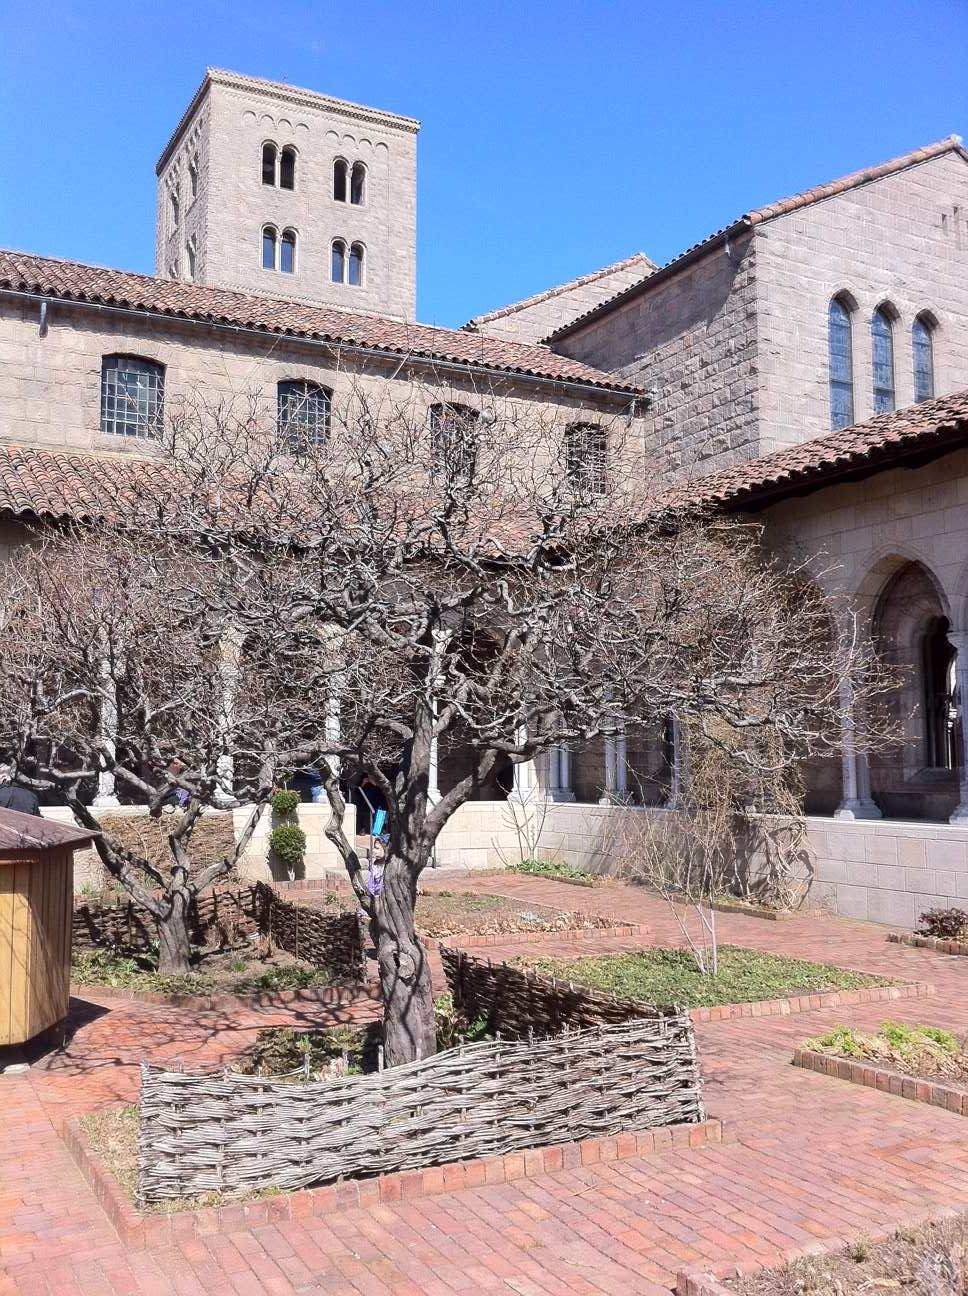 The Cloisters: Medieval Museum of Art